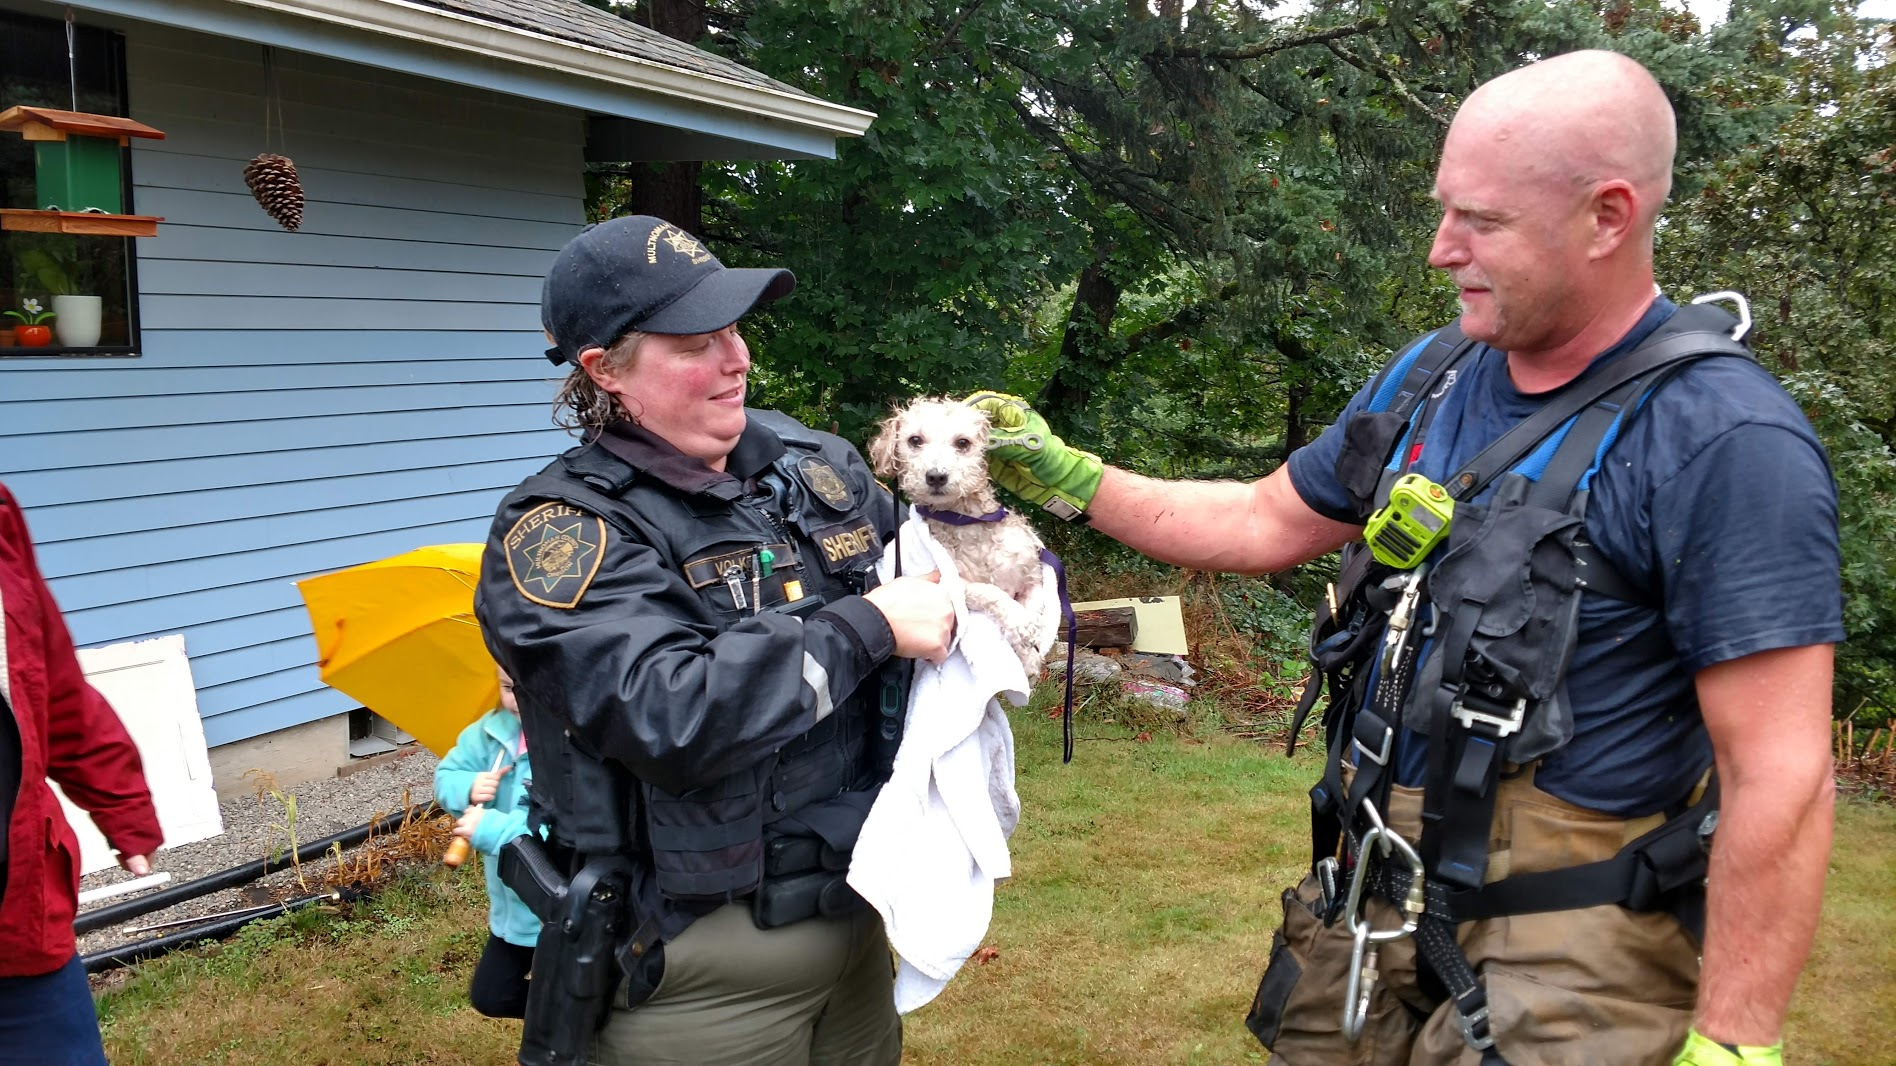 Abandoned dog rescued from cliff in Troutdale